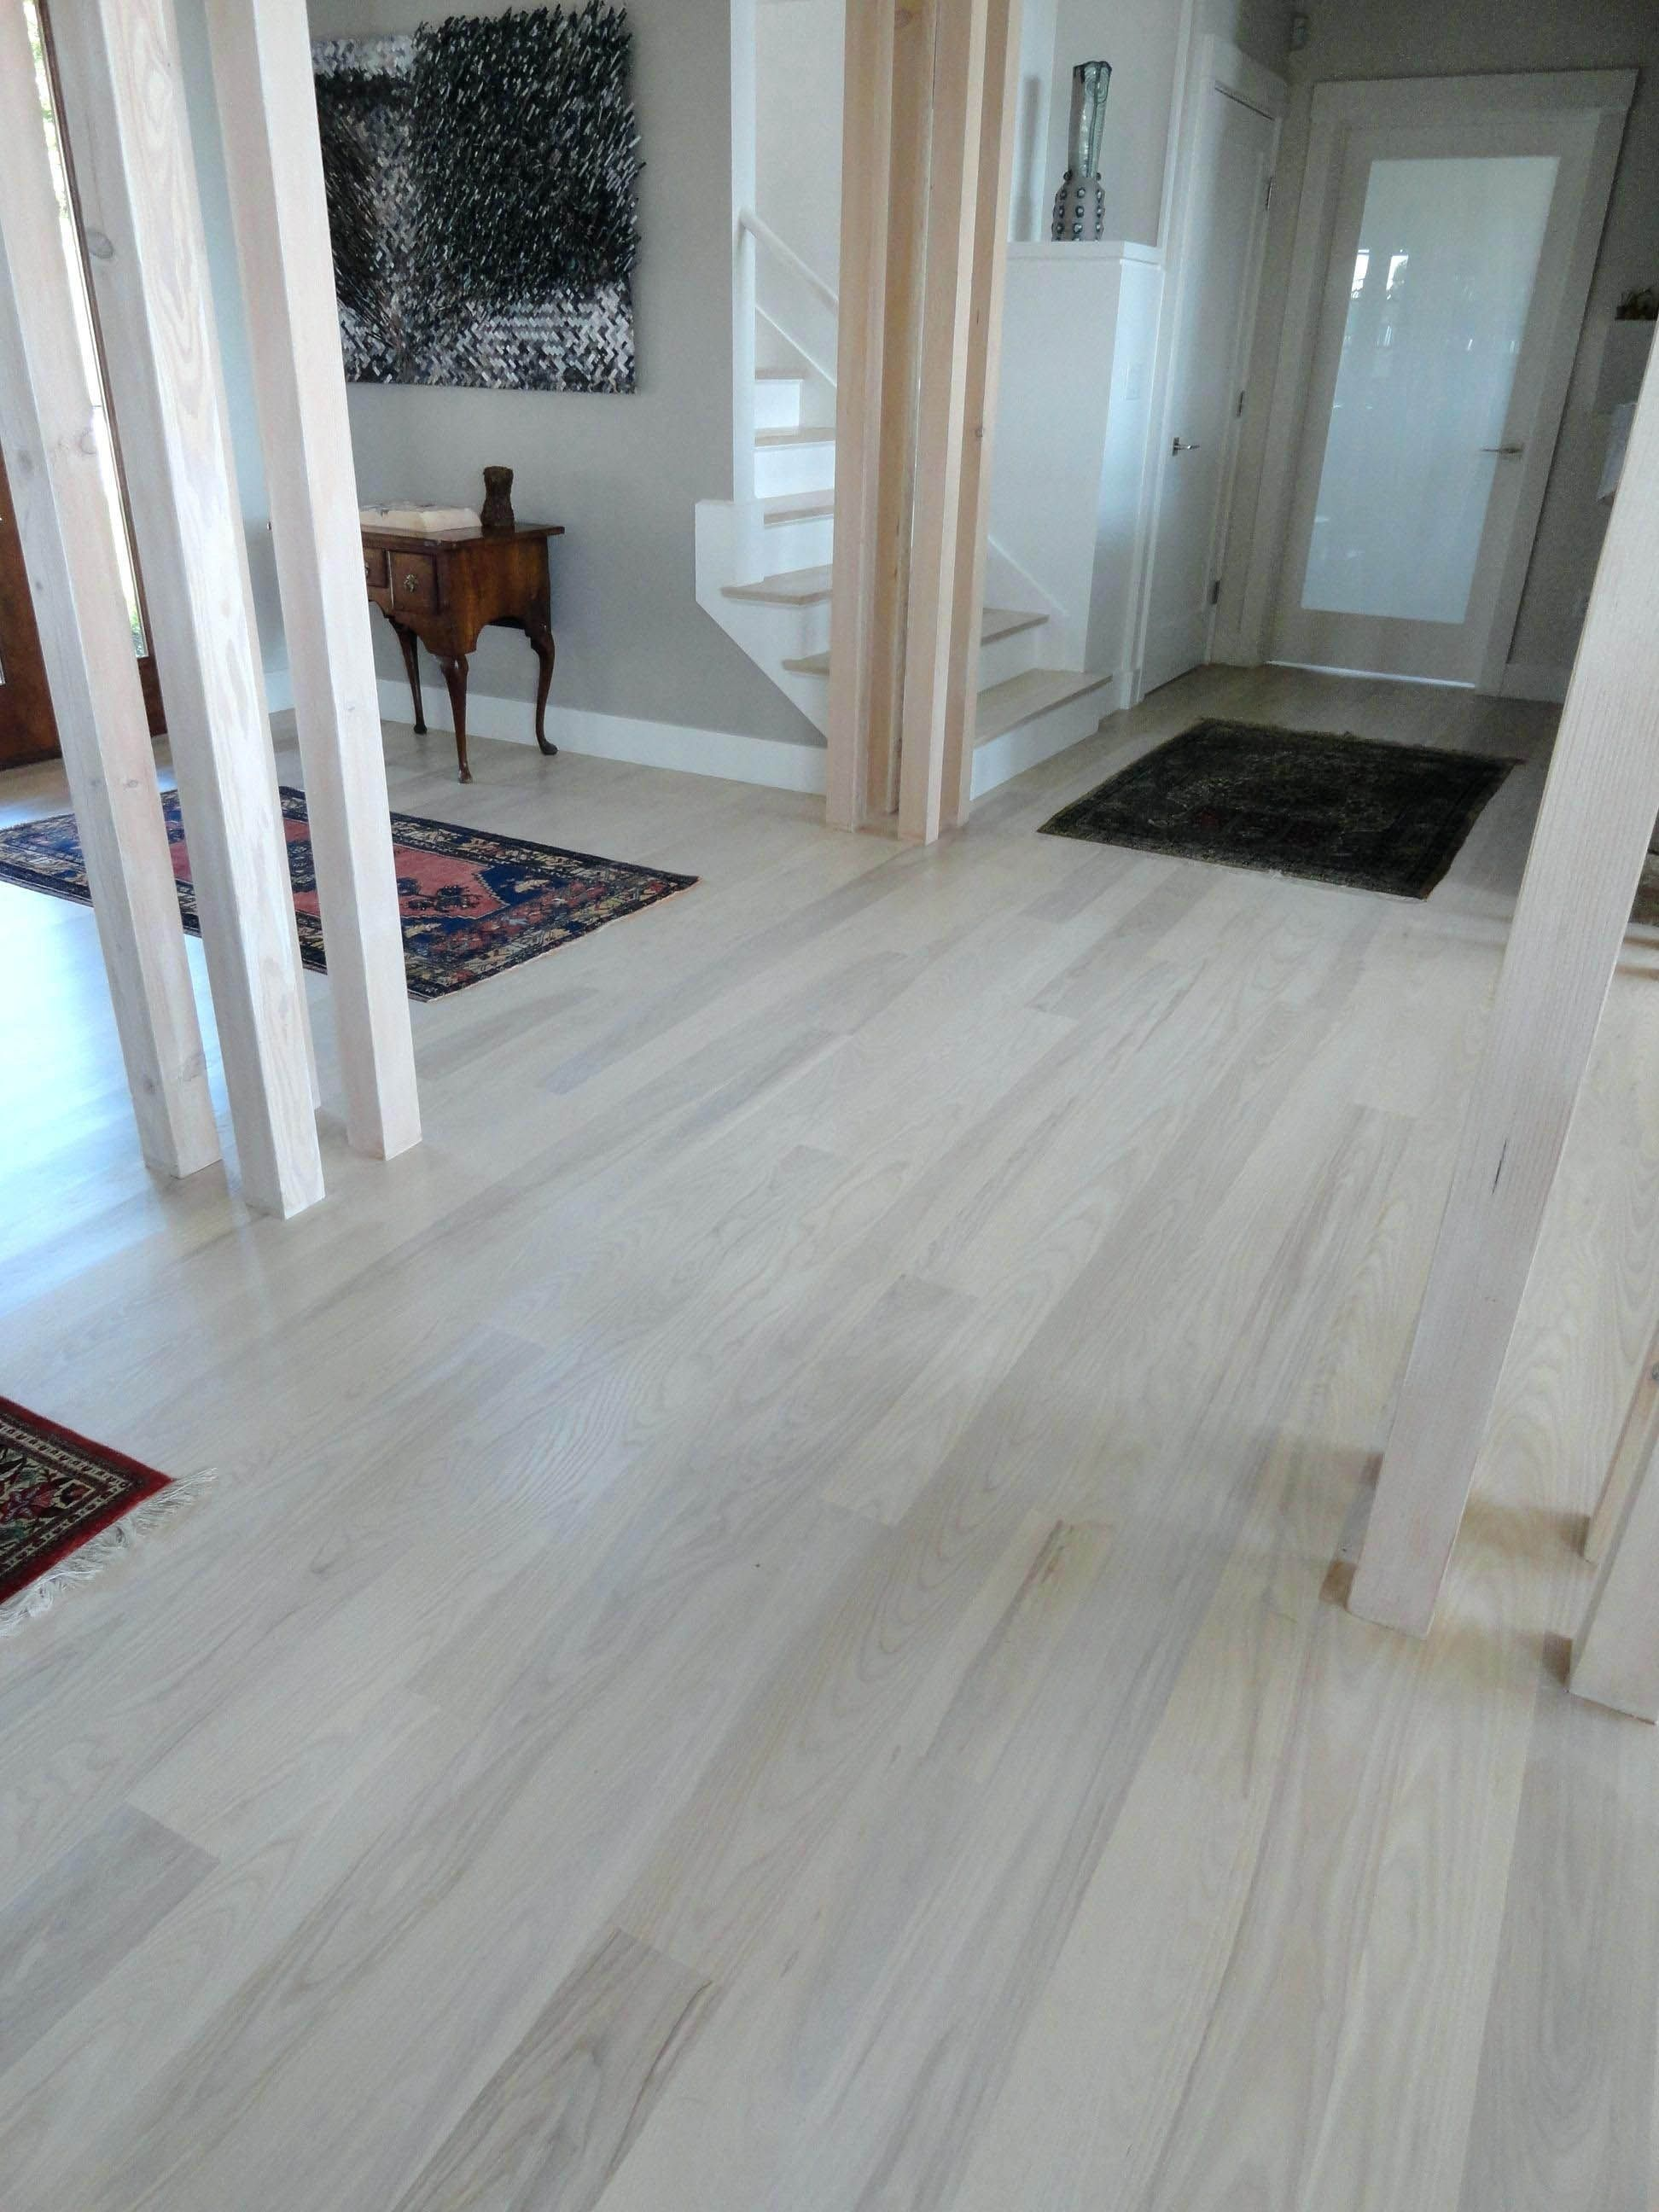 Laminate Flooring Is There A Waterproof Option White Wood